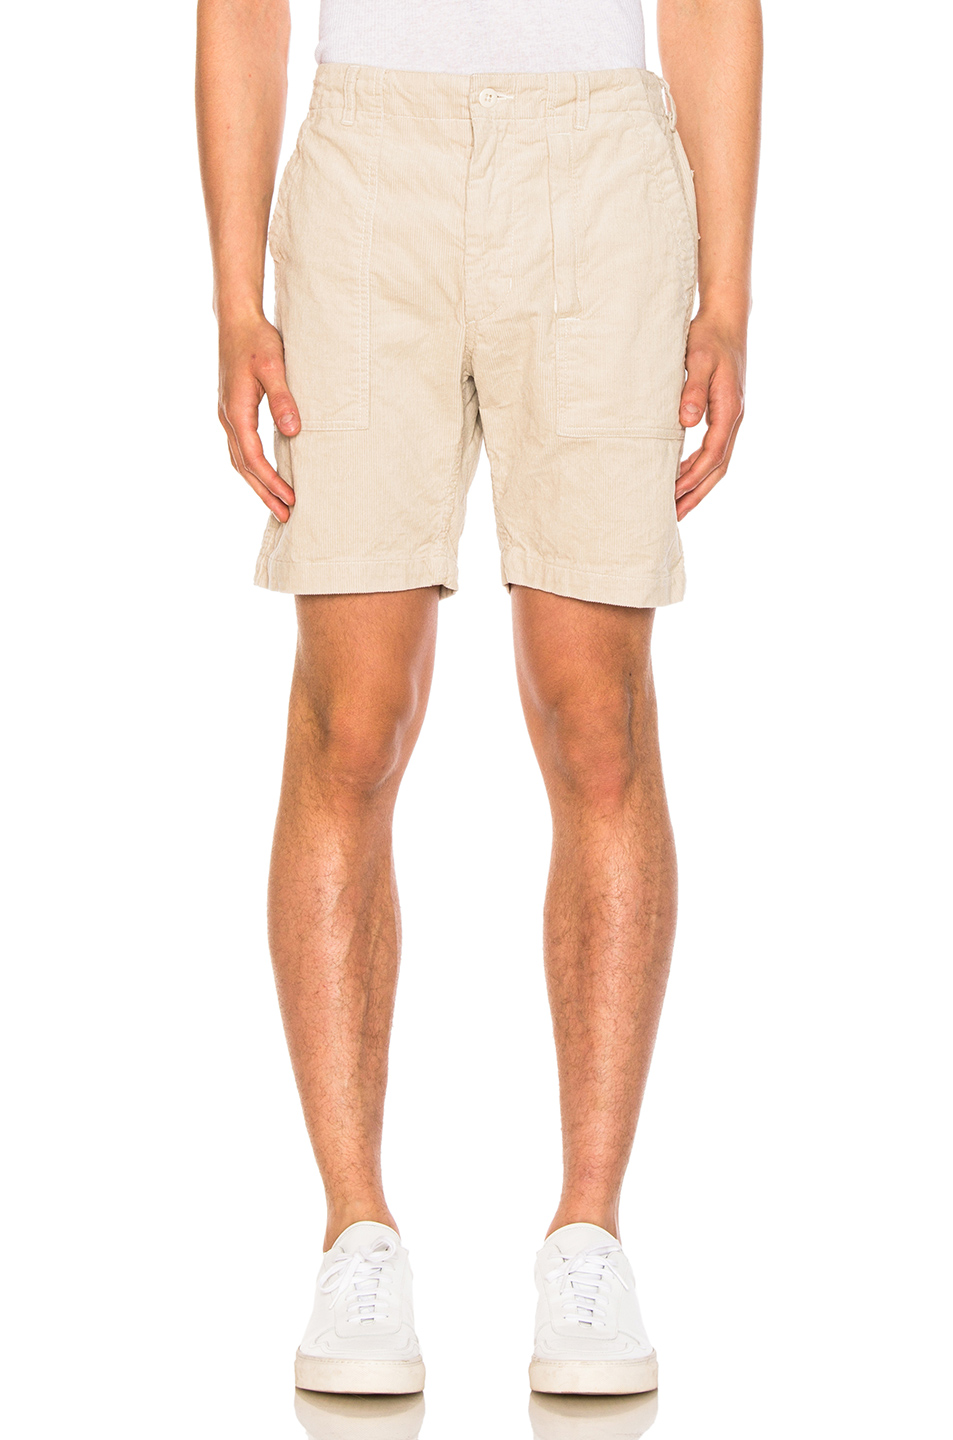 Engineered Garments Corduroy Fatigue Shorts in Neutrals